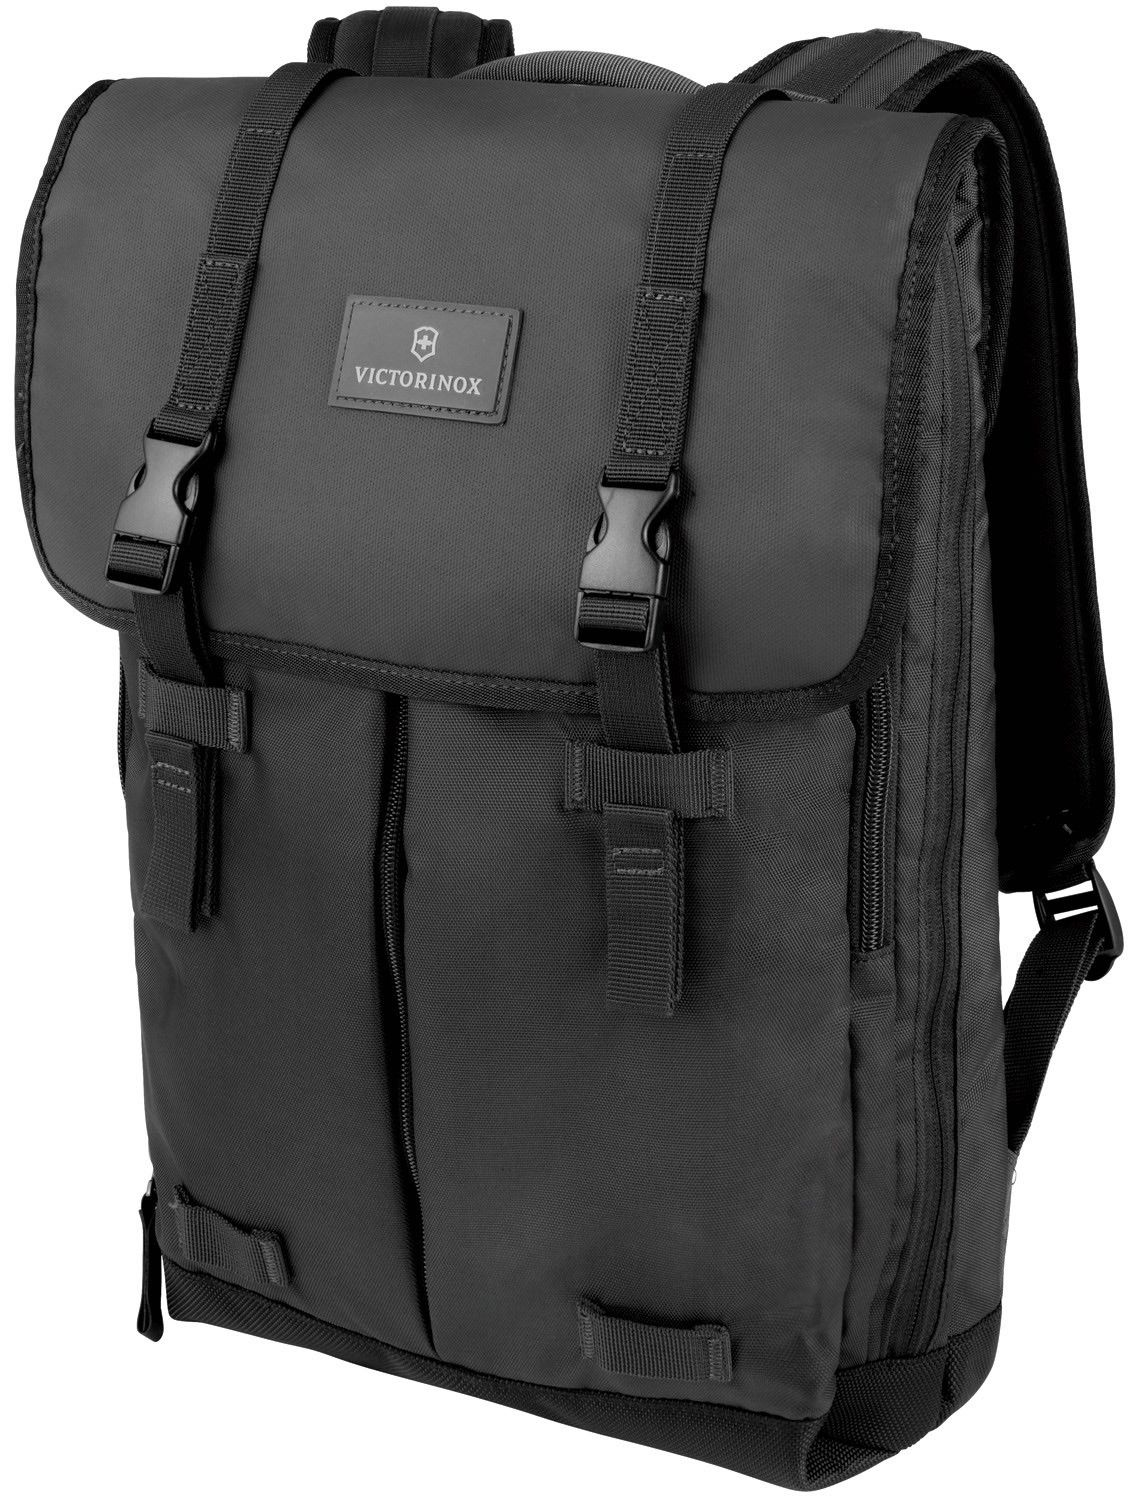 Victorinox Backpacks - Flapover Laptop Backpack | Backpack ...